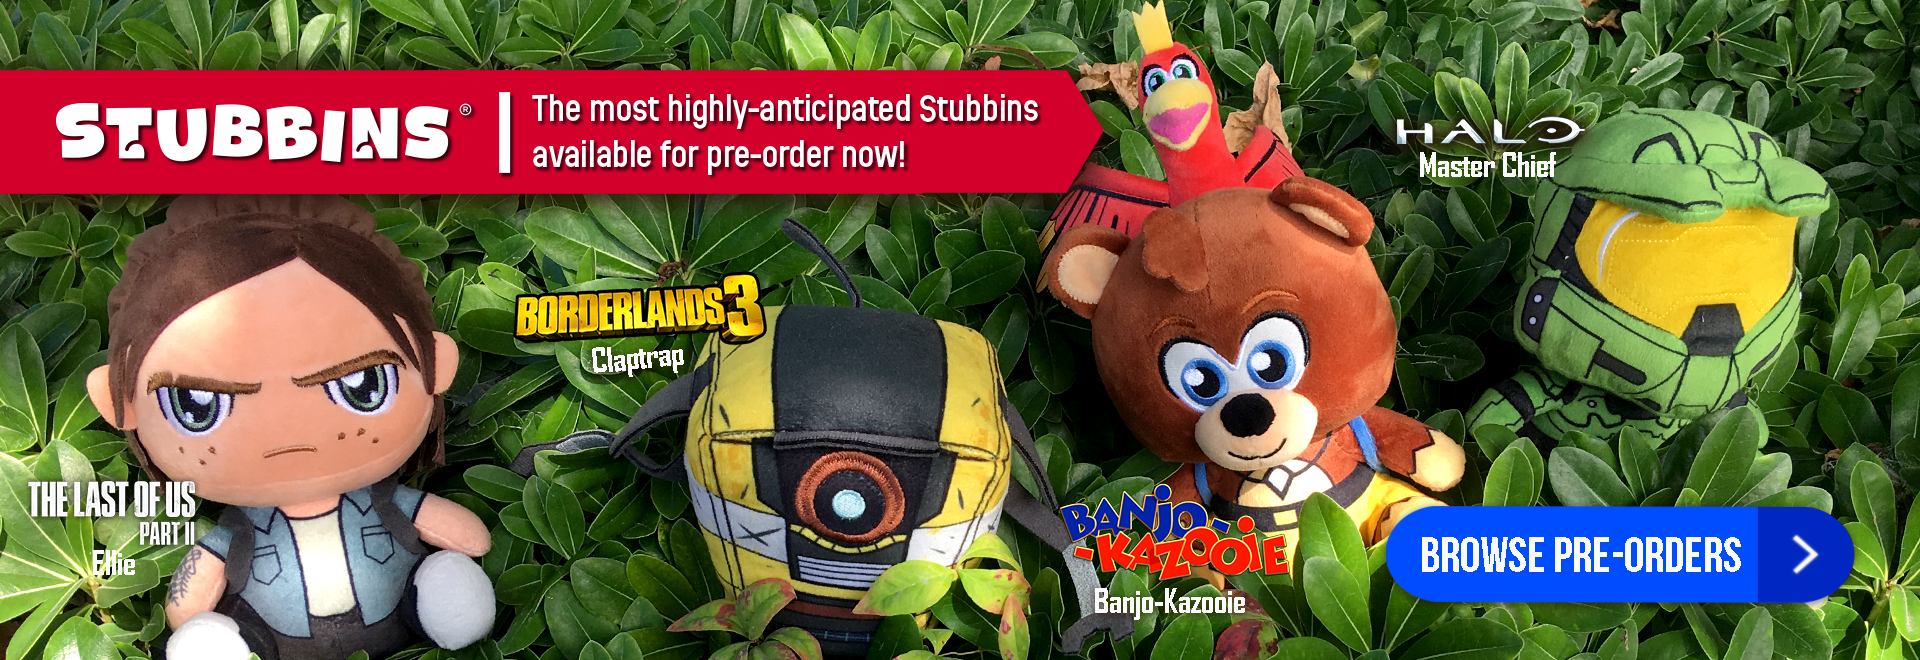 Stubbins, New, Pre-Order, Banjo, Banjo-Kazooie, Ellie, The Last of Us, Part II, Master Chief, Halo, Claptrap, Borderlands